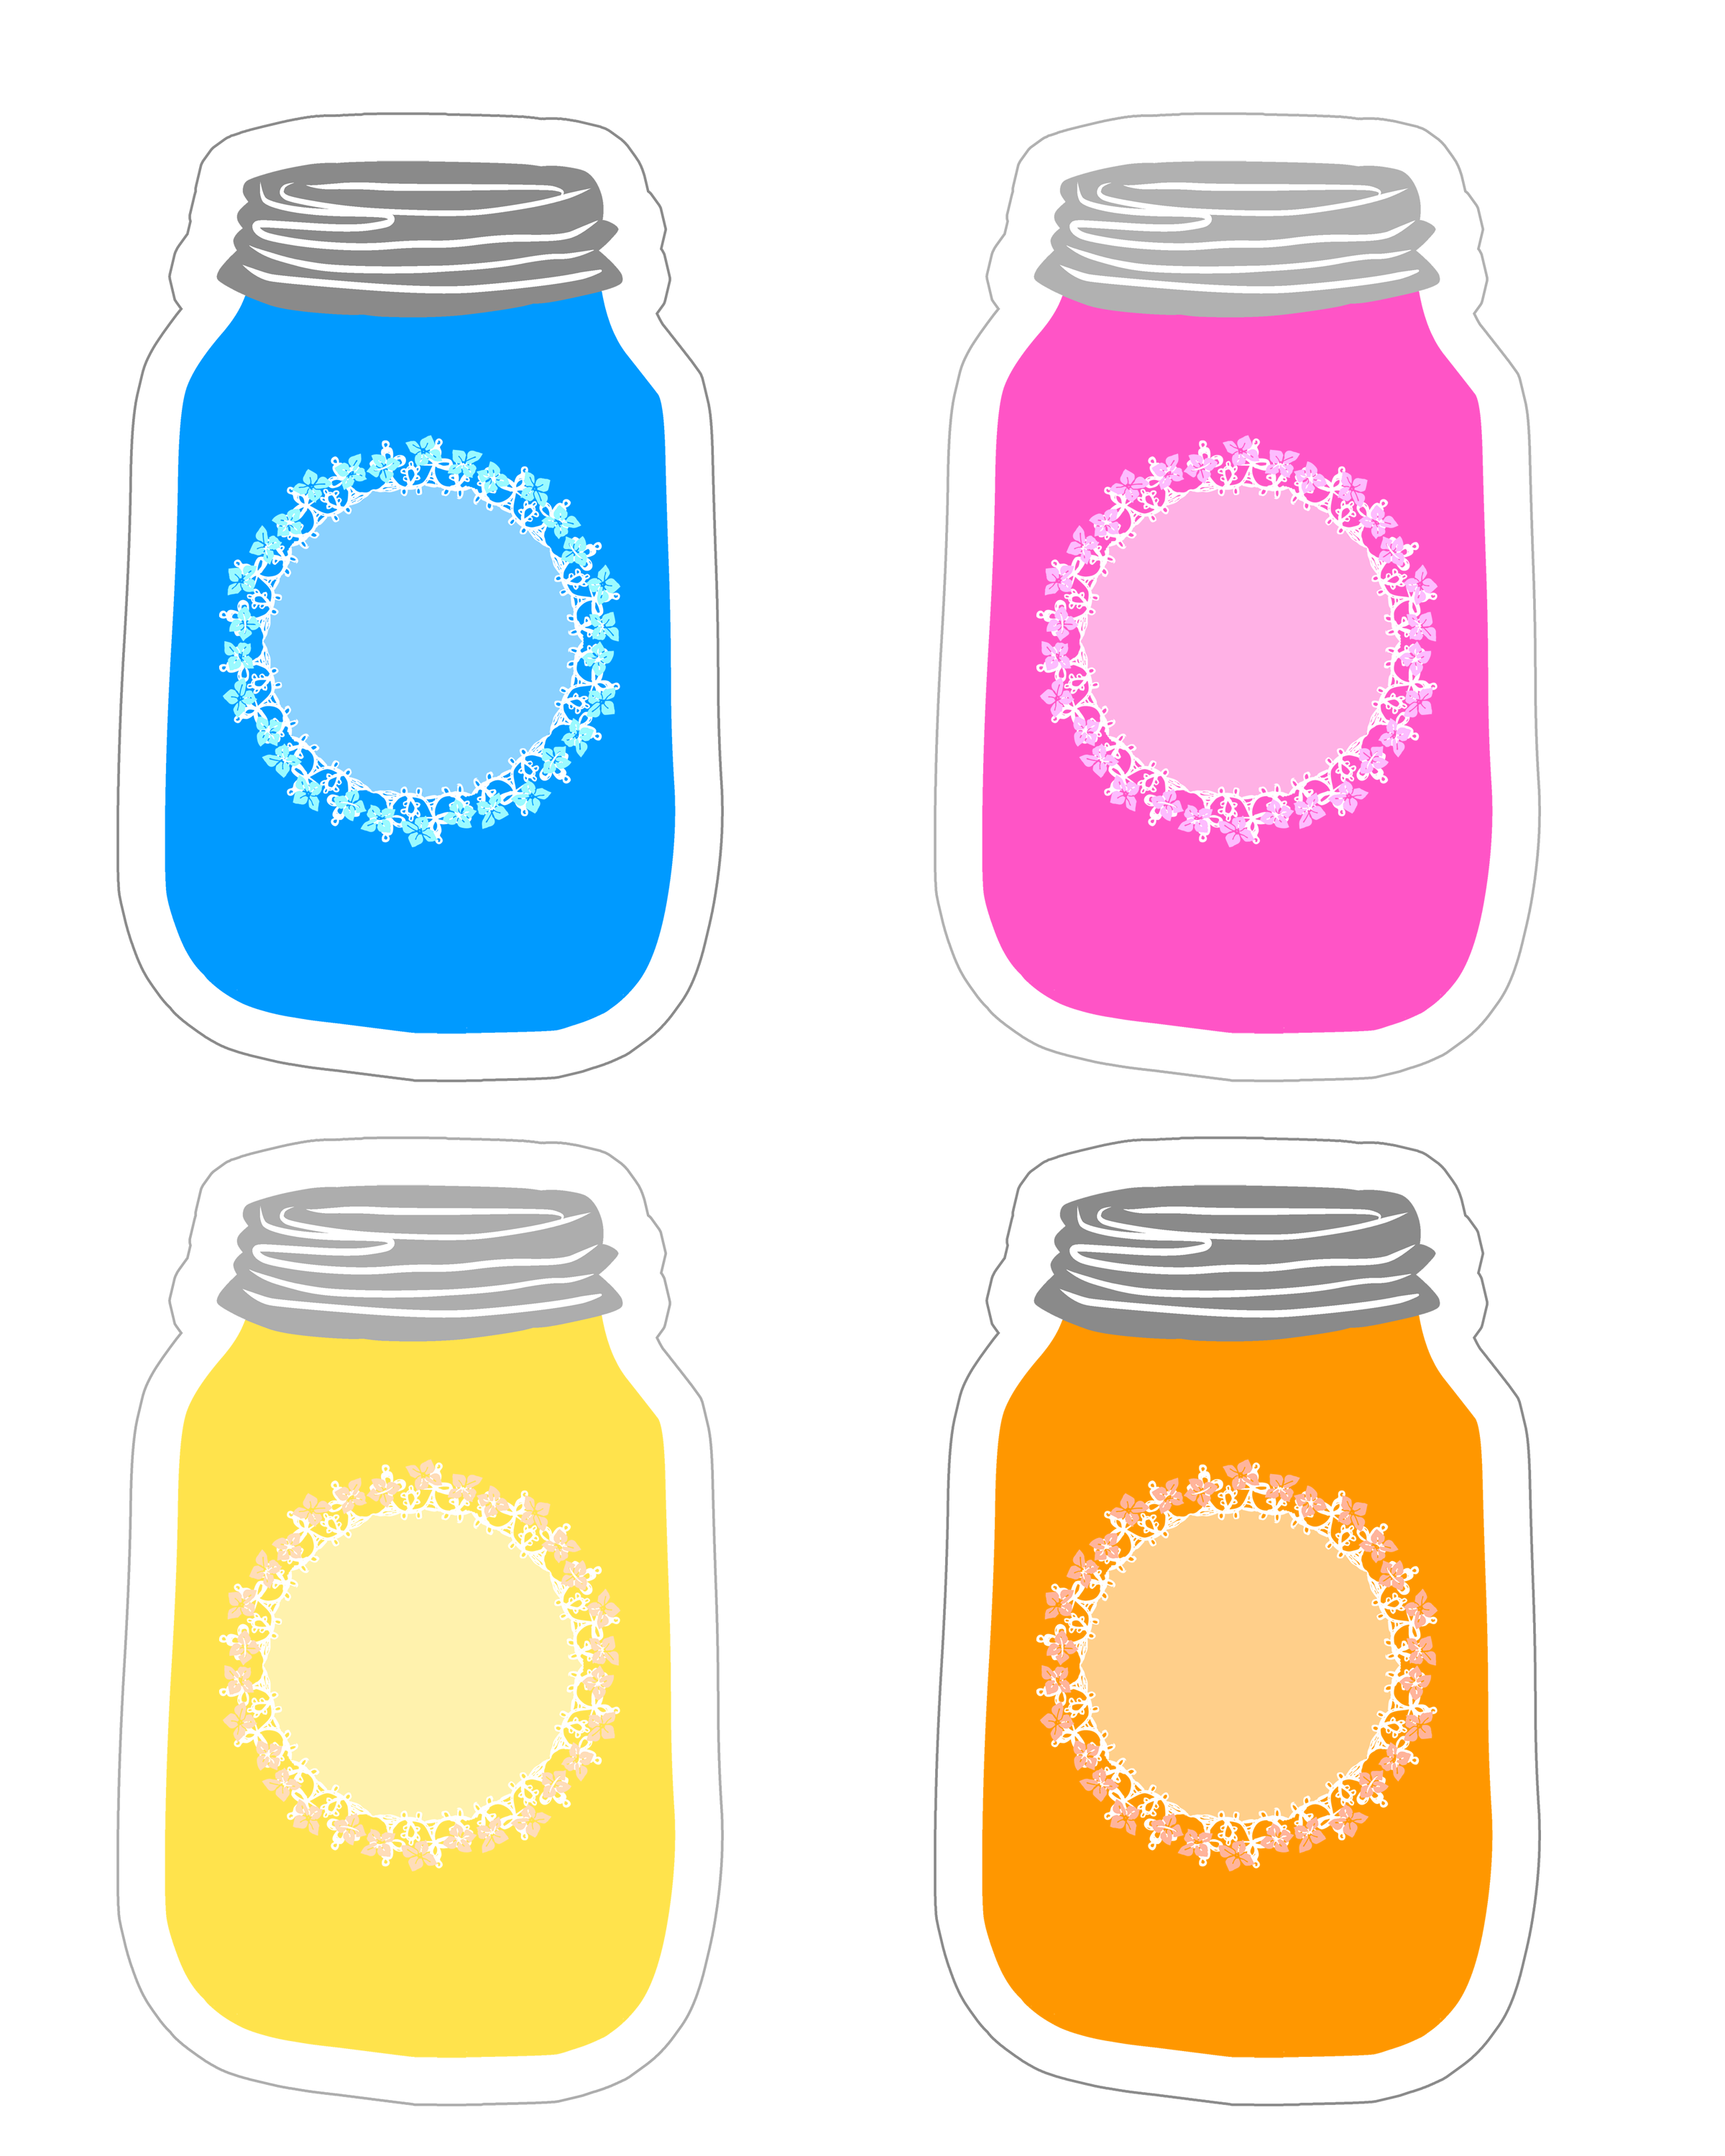 Money jar clipart jpg royalty free library Mason Jars Clipart | Free download best Mason Jars Clipart on ... jpg royalty free library